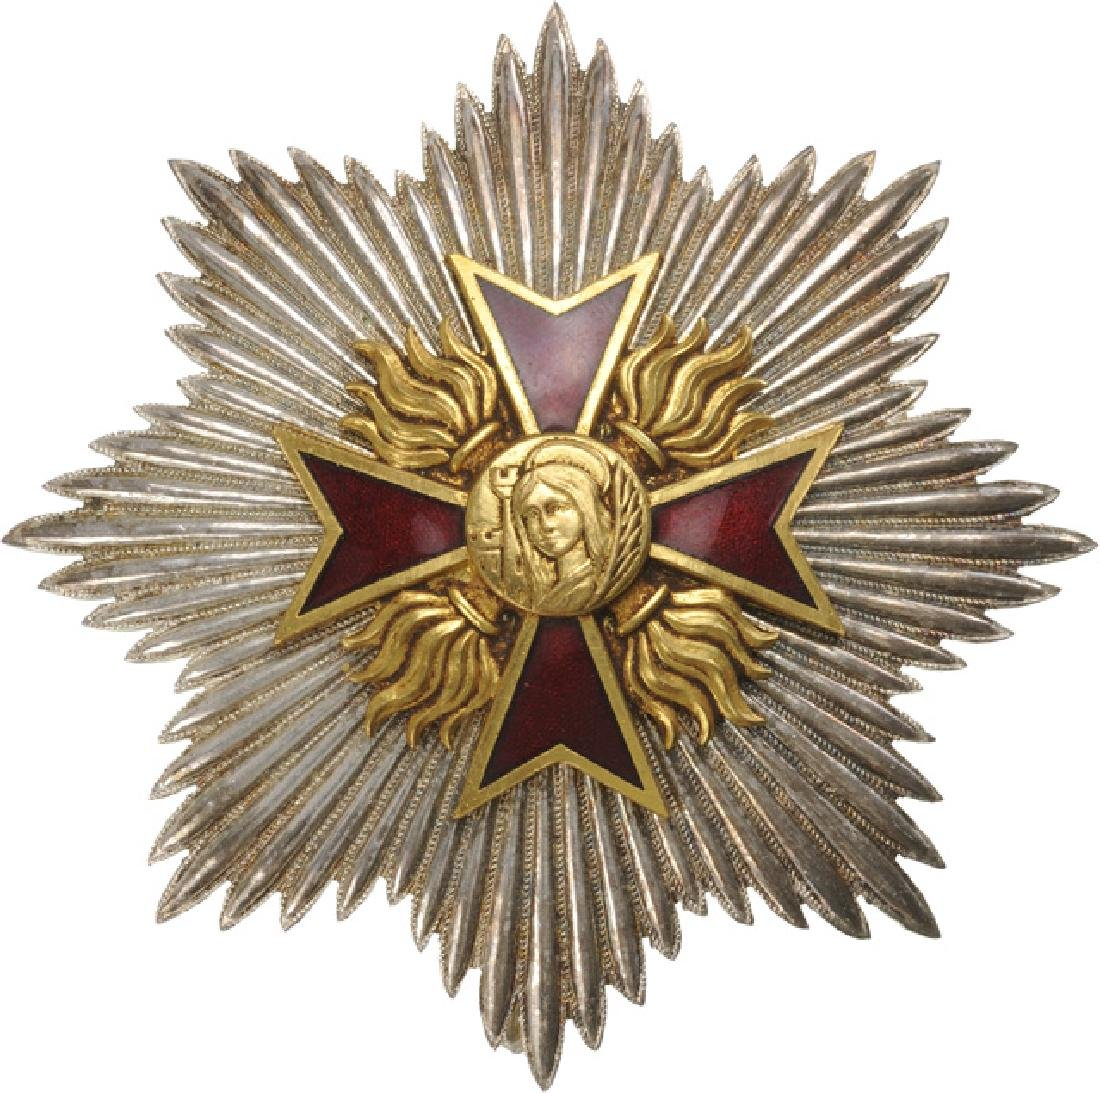 ORDER OF THE NATIONAL ASSOCIATION OF FIREMAN